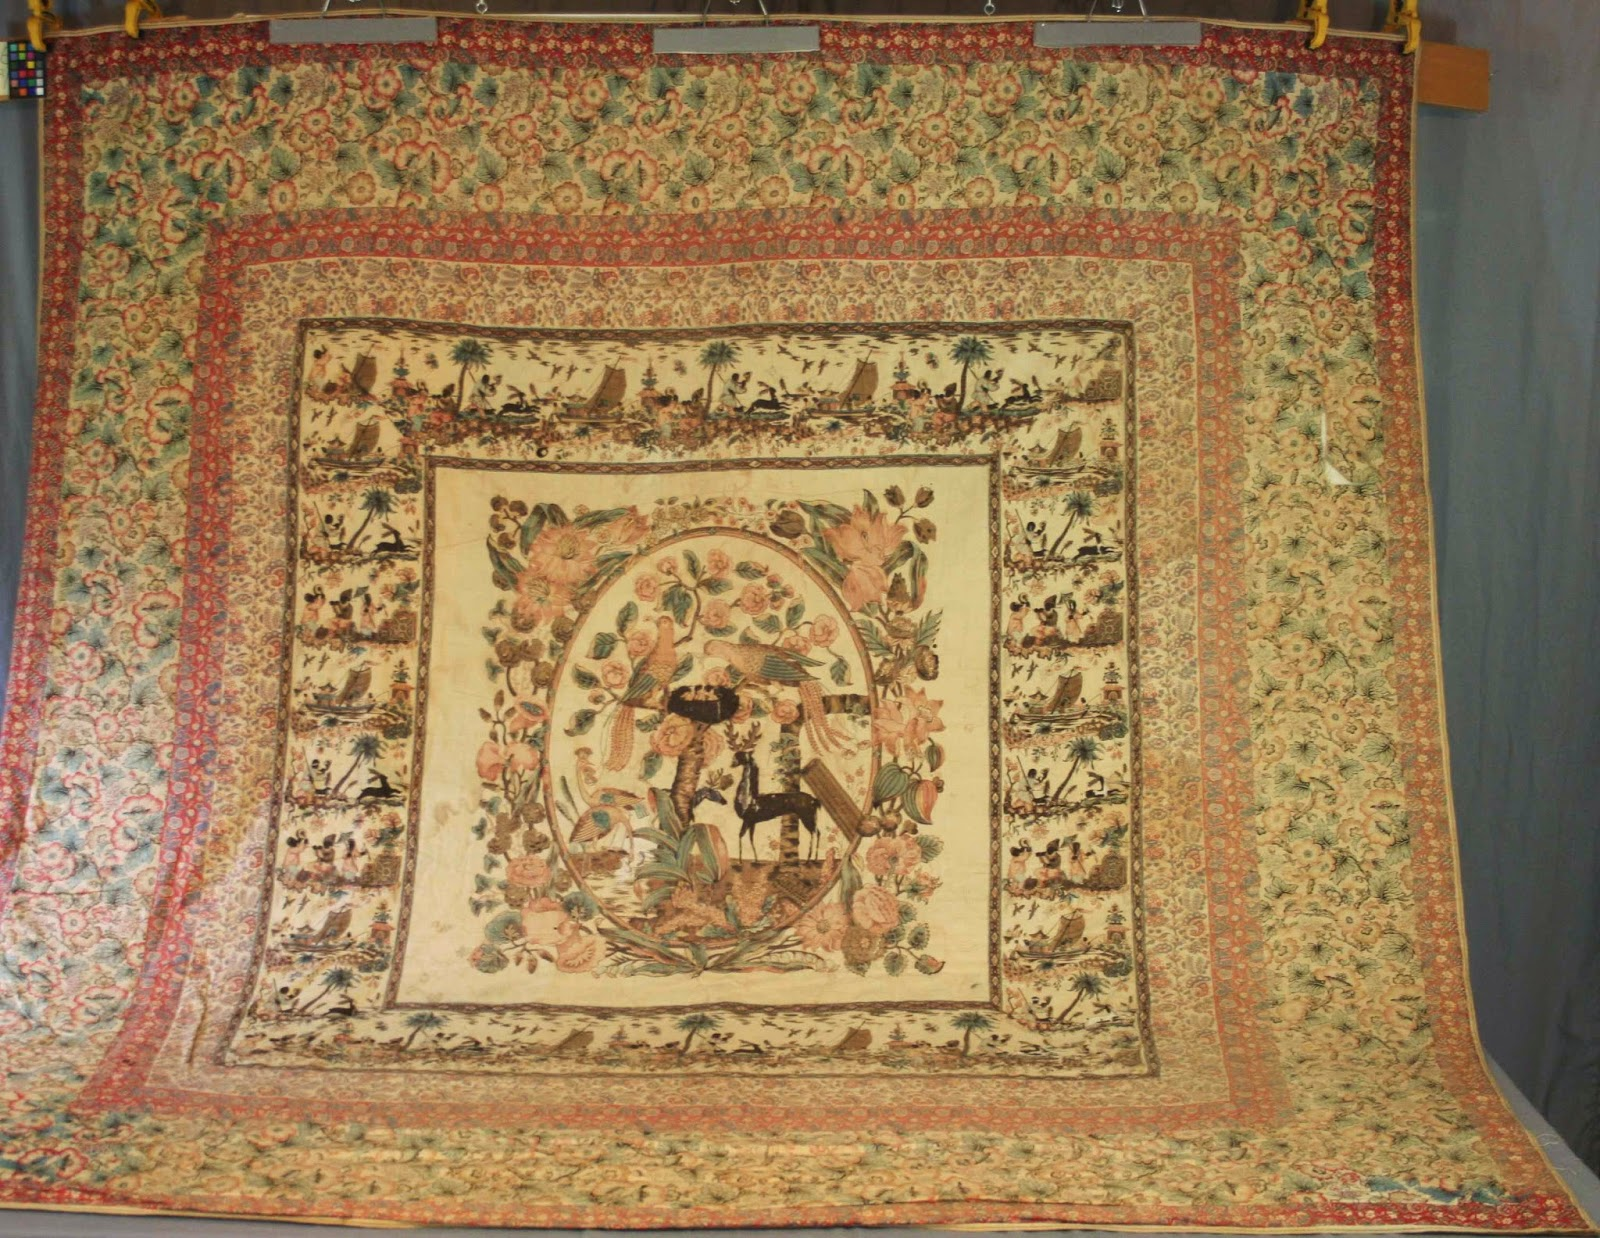 Palampore before treatment at Spicer Art Conservation. Textile conservator